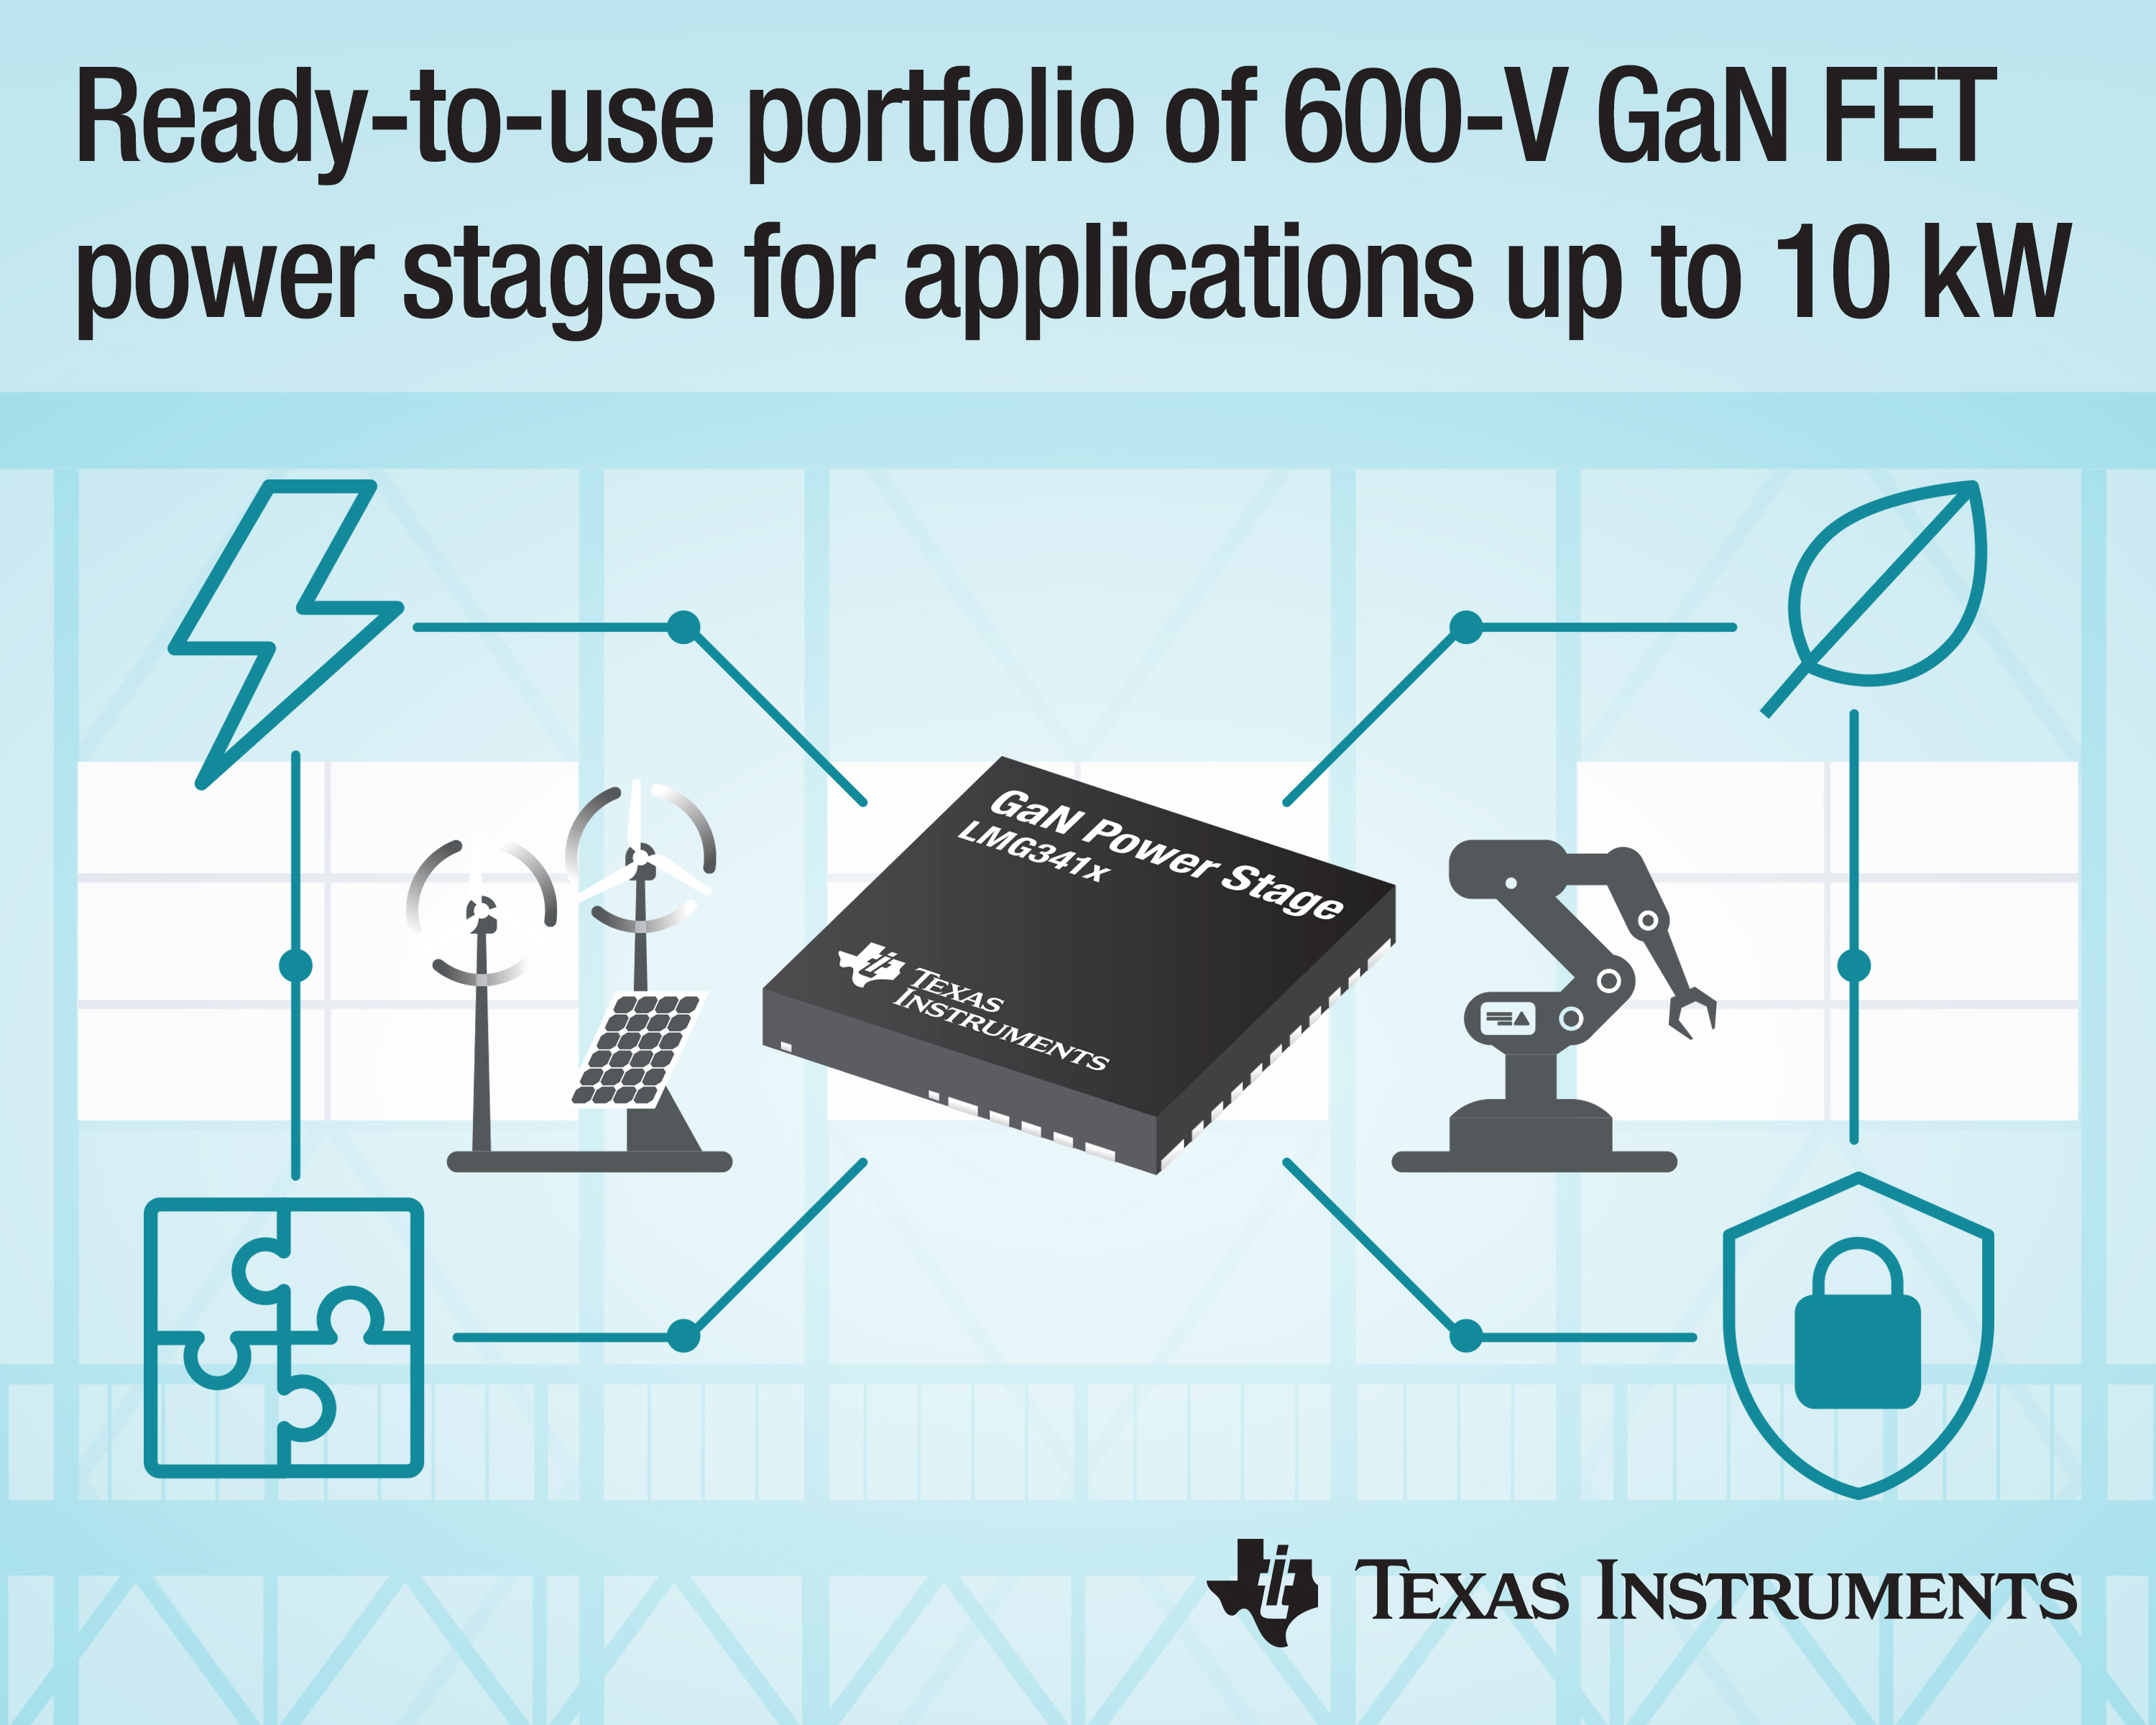 600-V GaN FET Supports Applications up to 10 kW